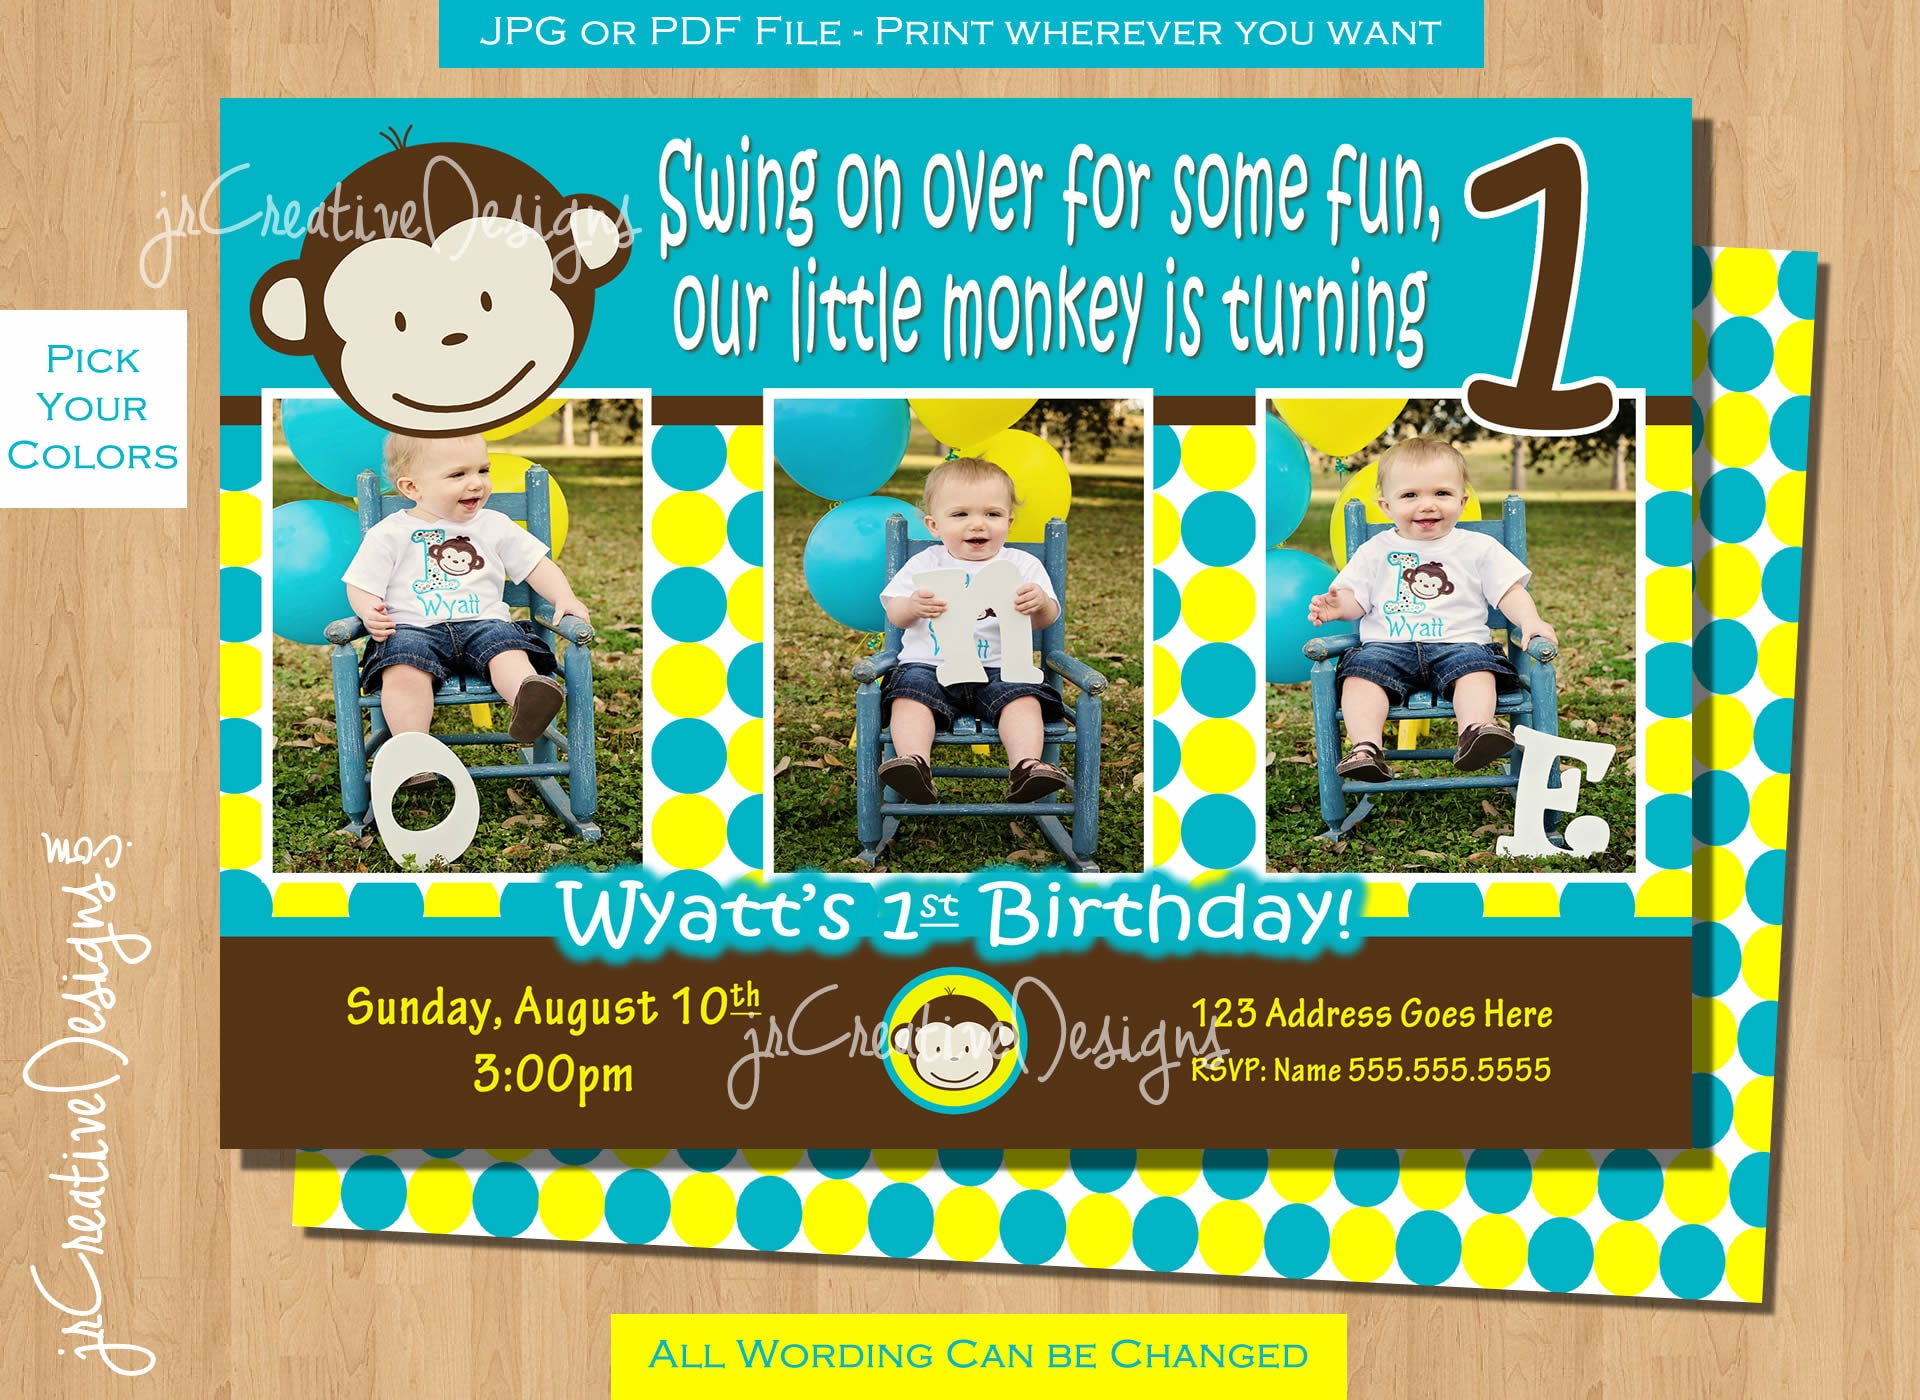 Mod Monkey Invitation Mod Monkey invite Photo 1st Birthday